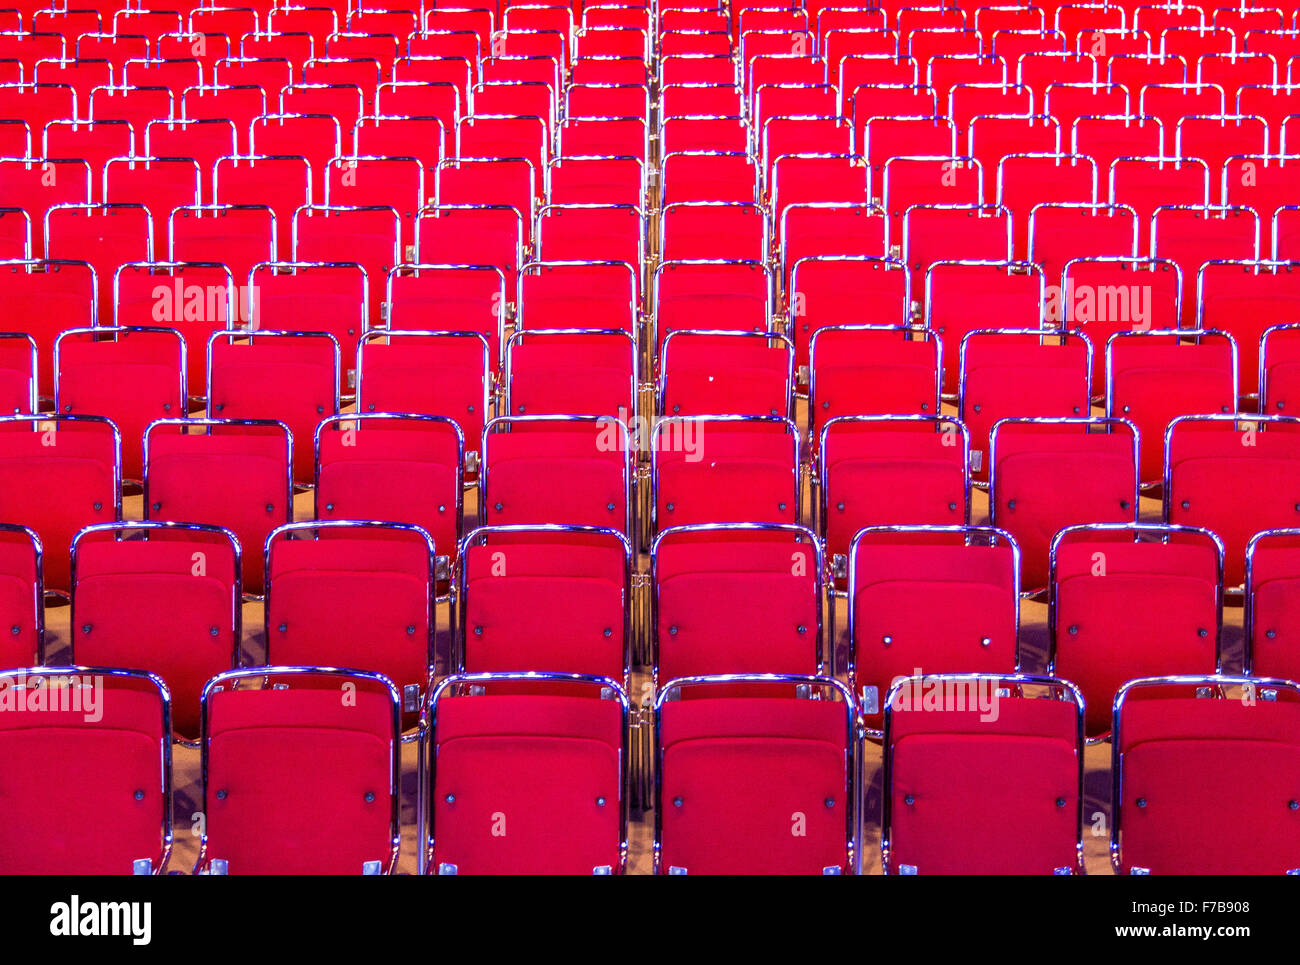 Red chairs, many rows, in an auditorium, theater, - Stock Image